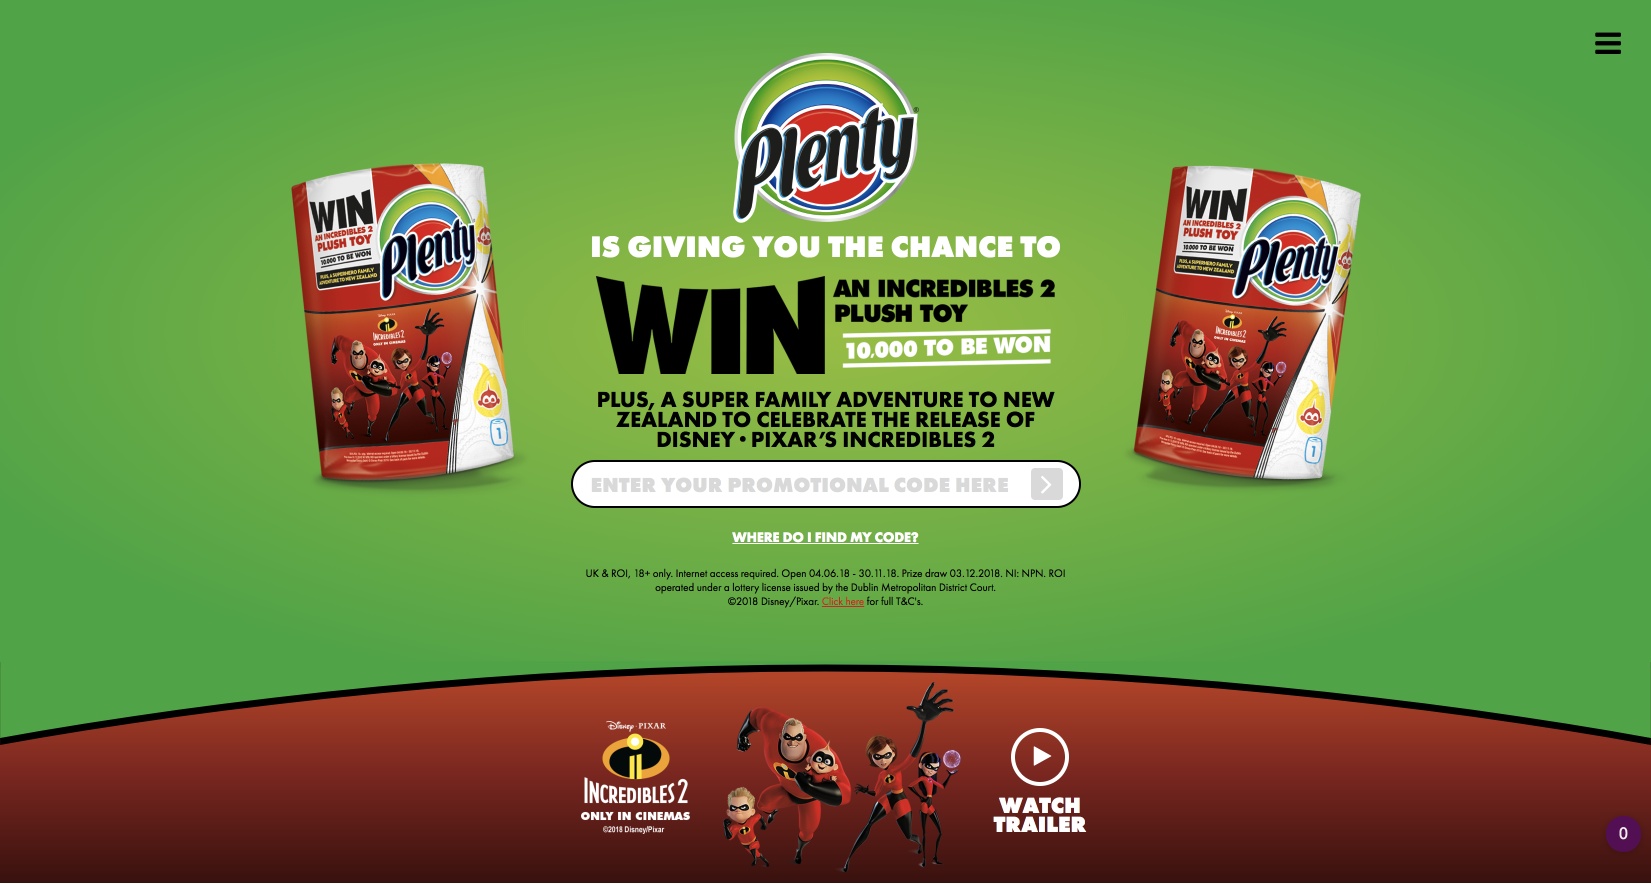 Win with Plenty _ Win Incredibles 2 plush - Home.png